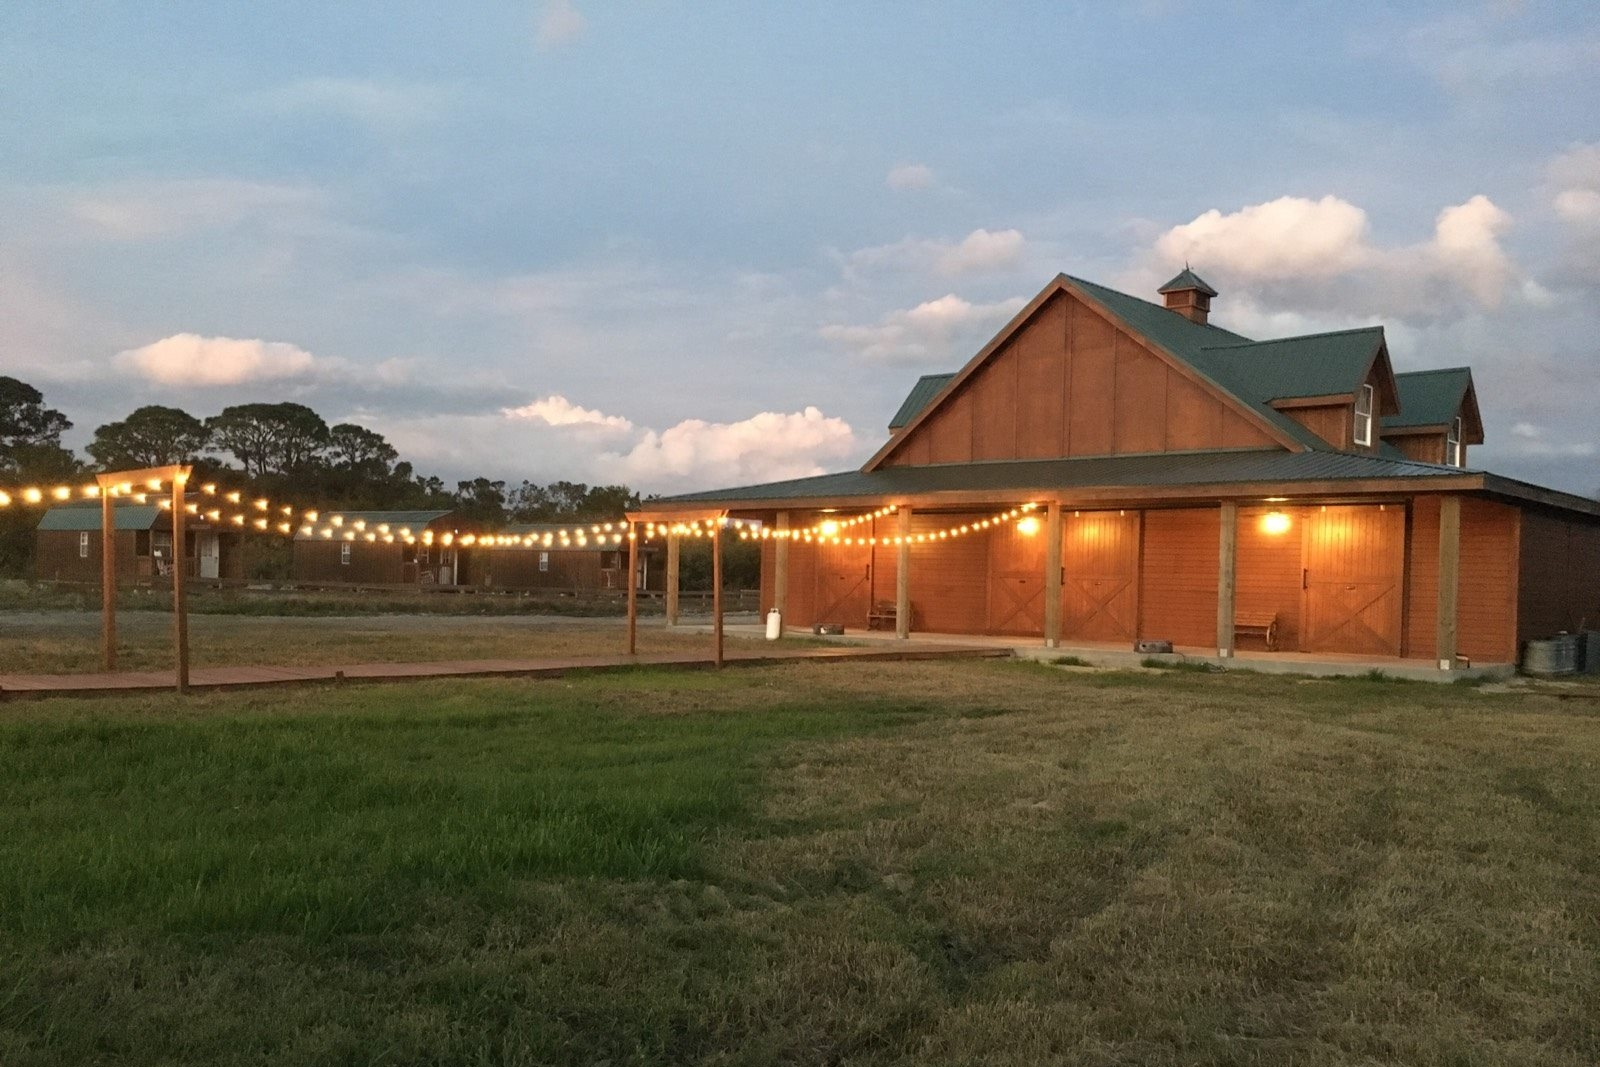 stringed-lights-outdoor-wedding-obloy-family-ranch - Copy.jpg